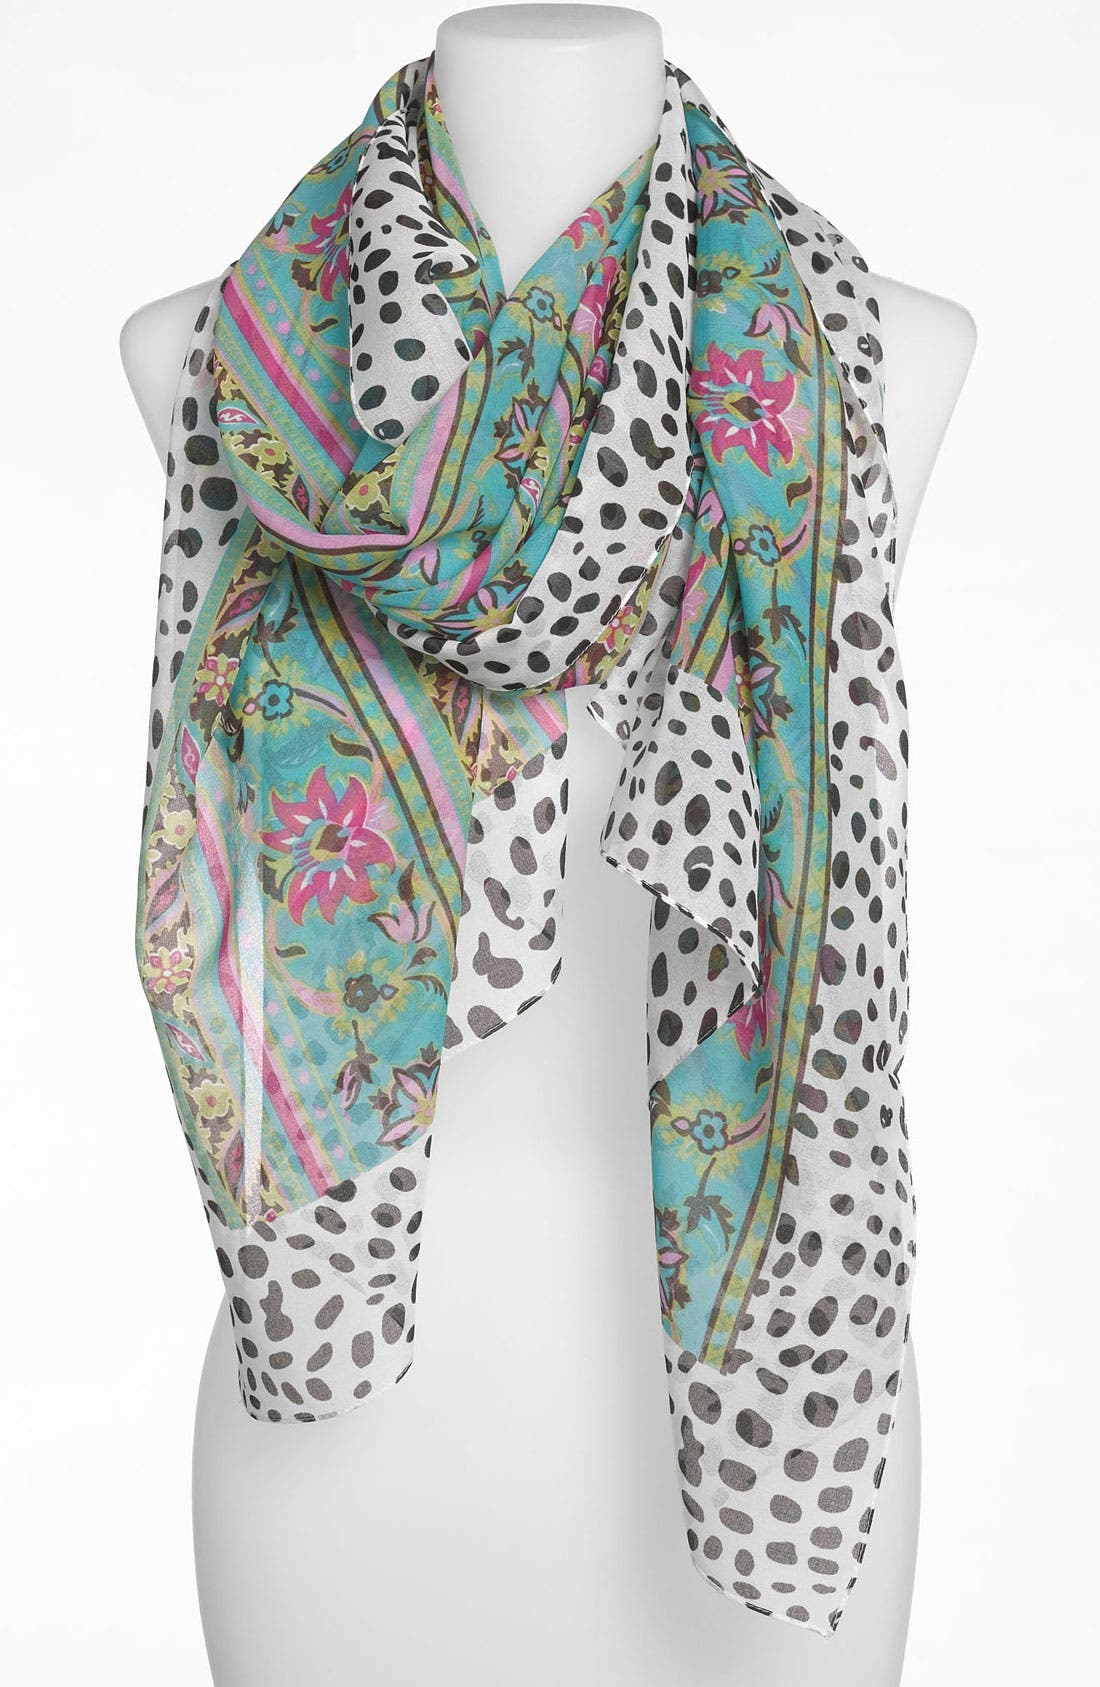 Main Image - Nordstrom 'Flowers & Spots' Scarf